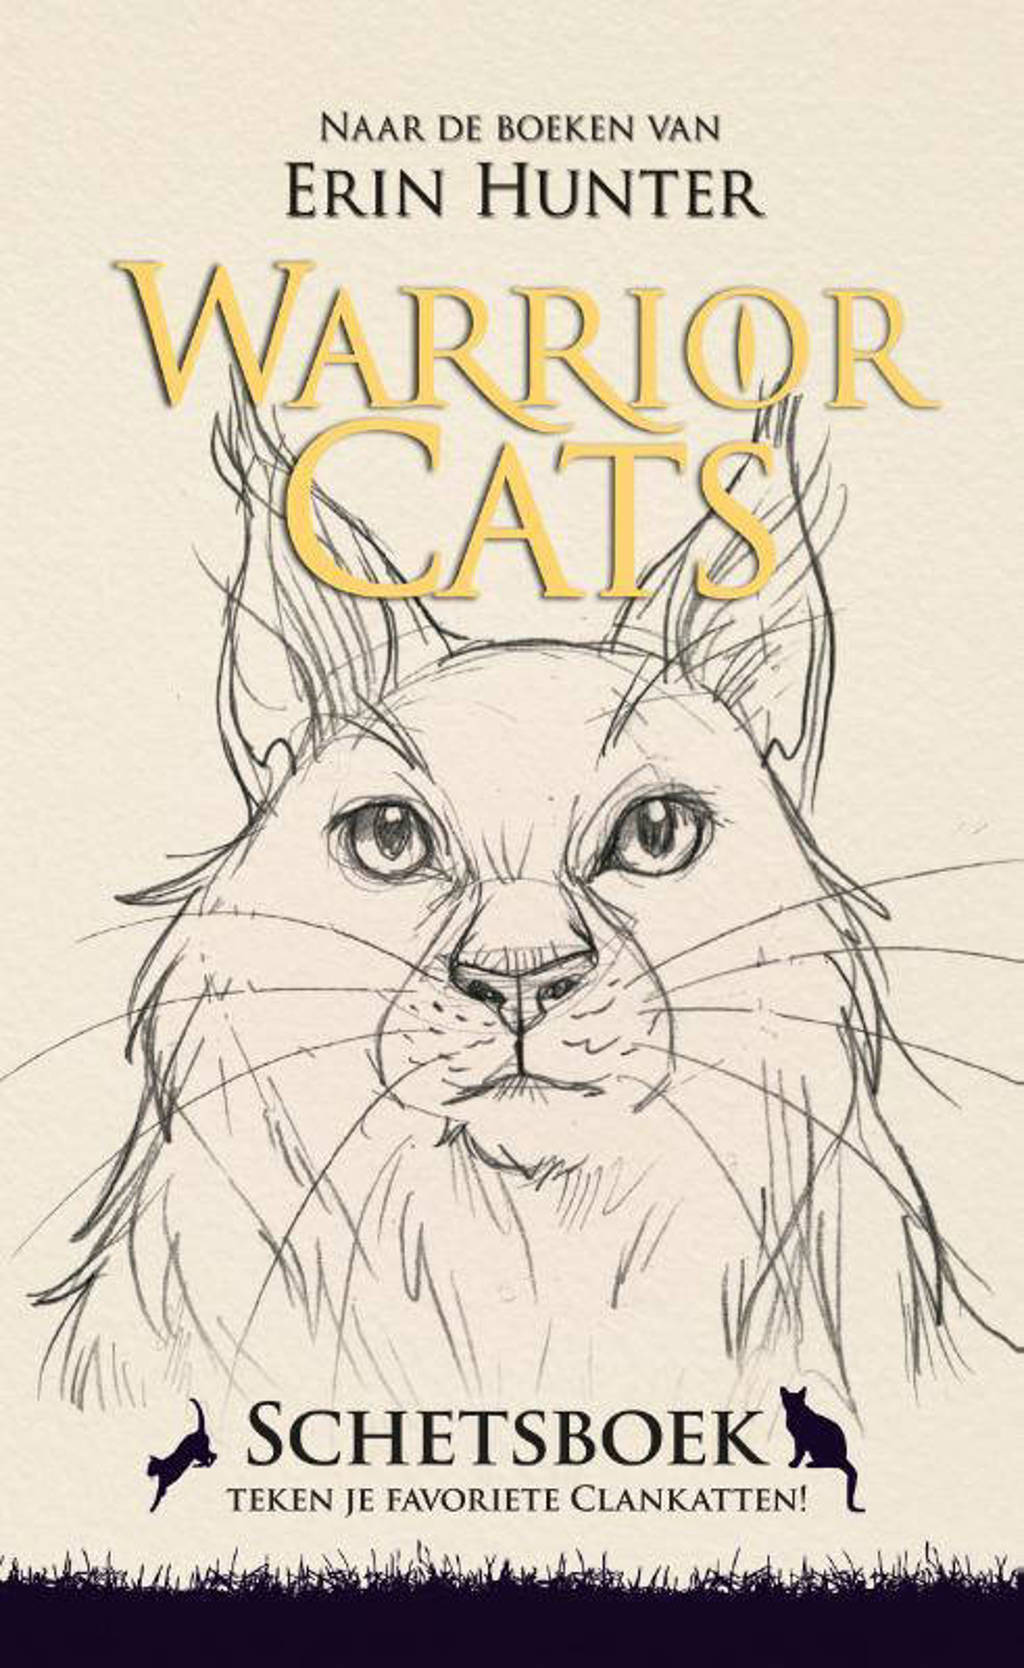 Warrior Cats: Warrior cats schetsboek - Frieda van Raevels